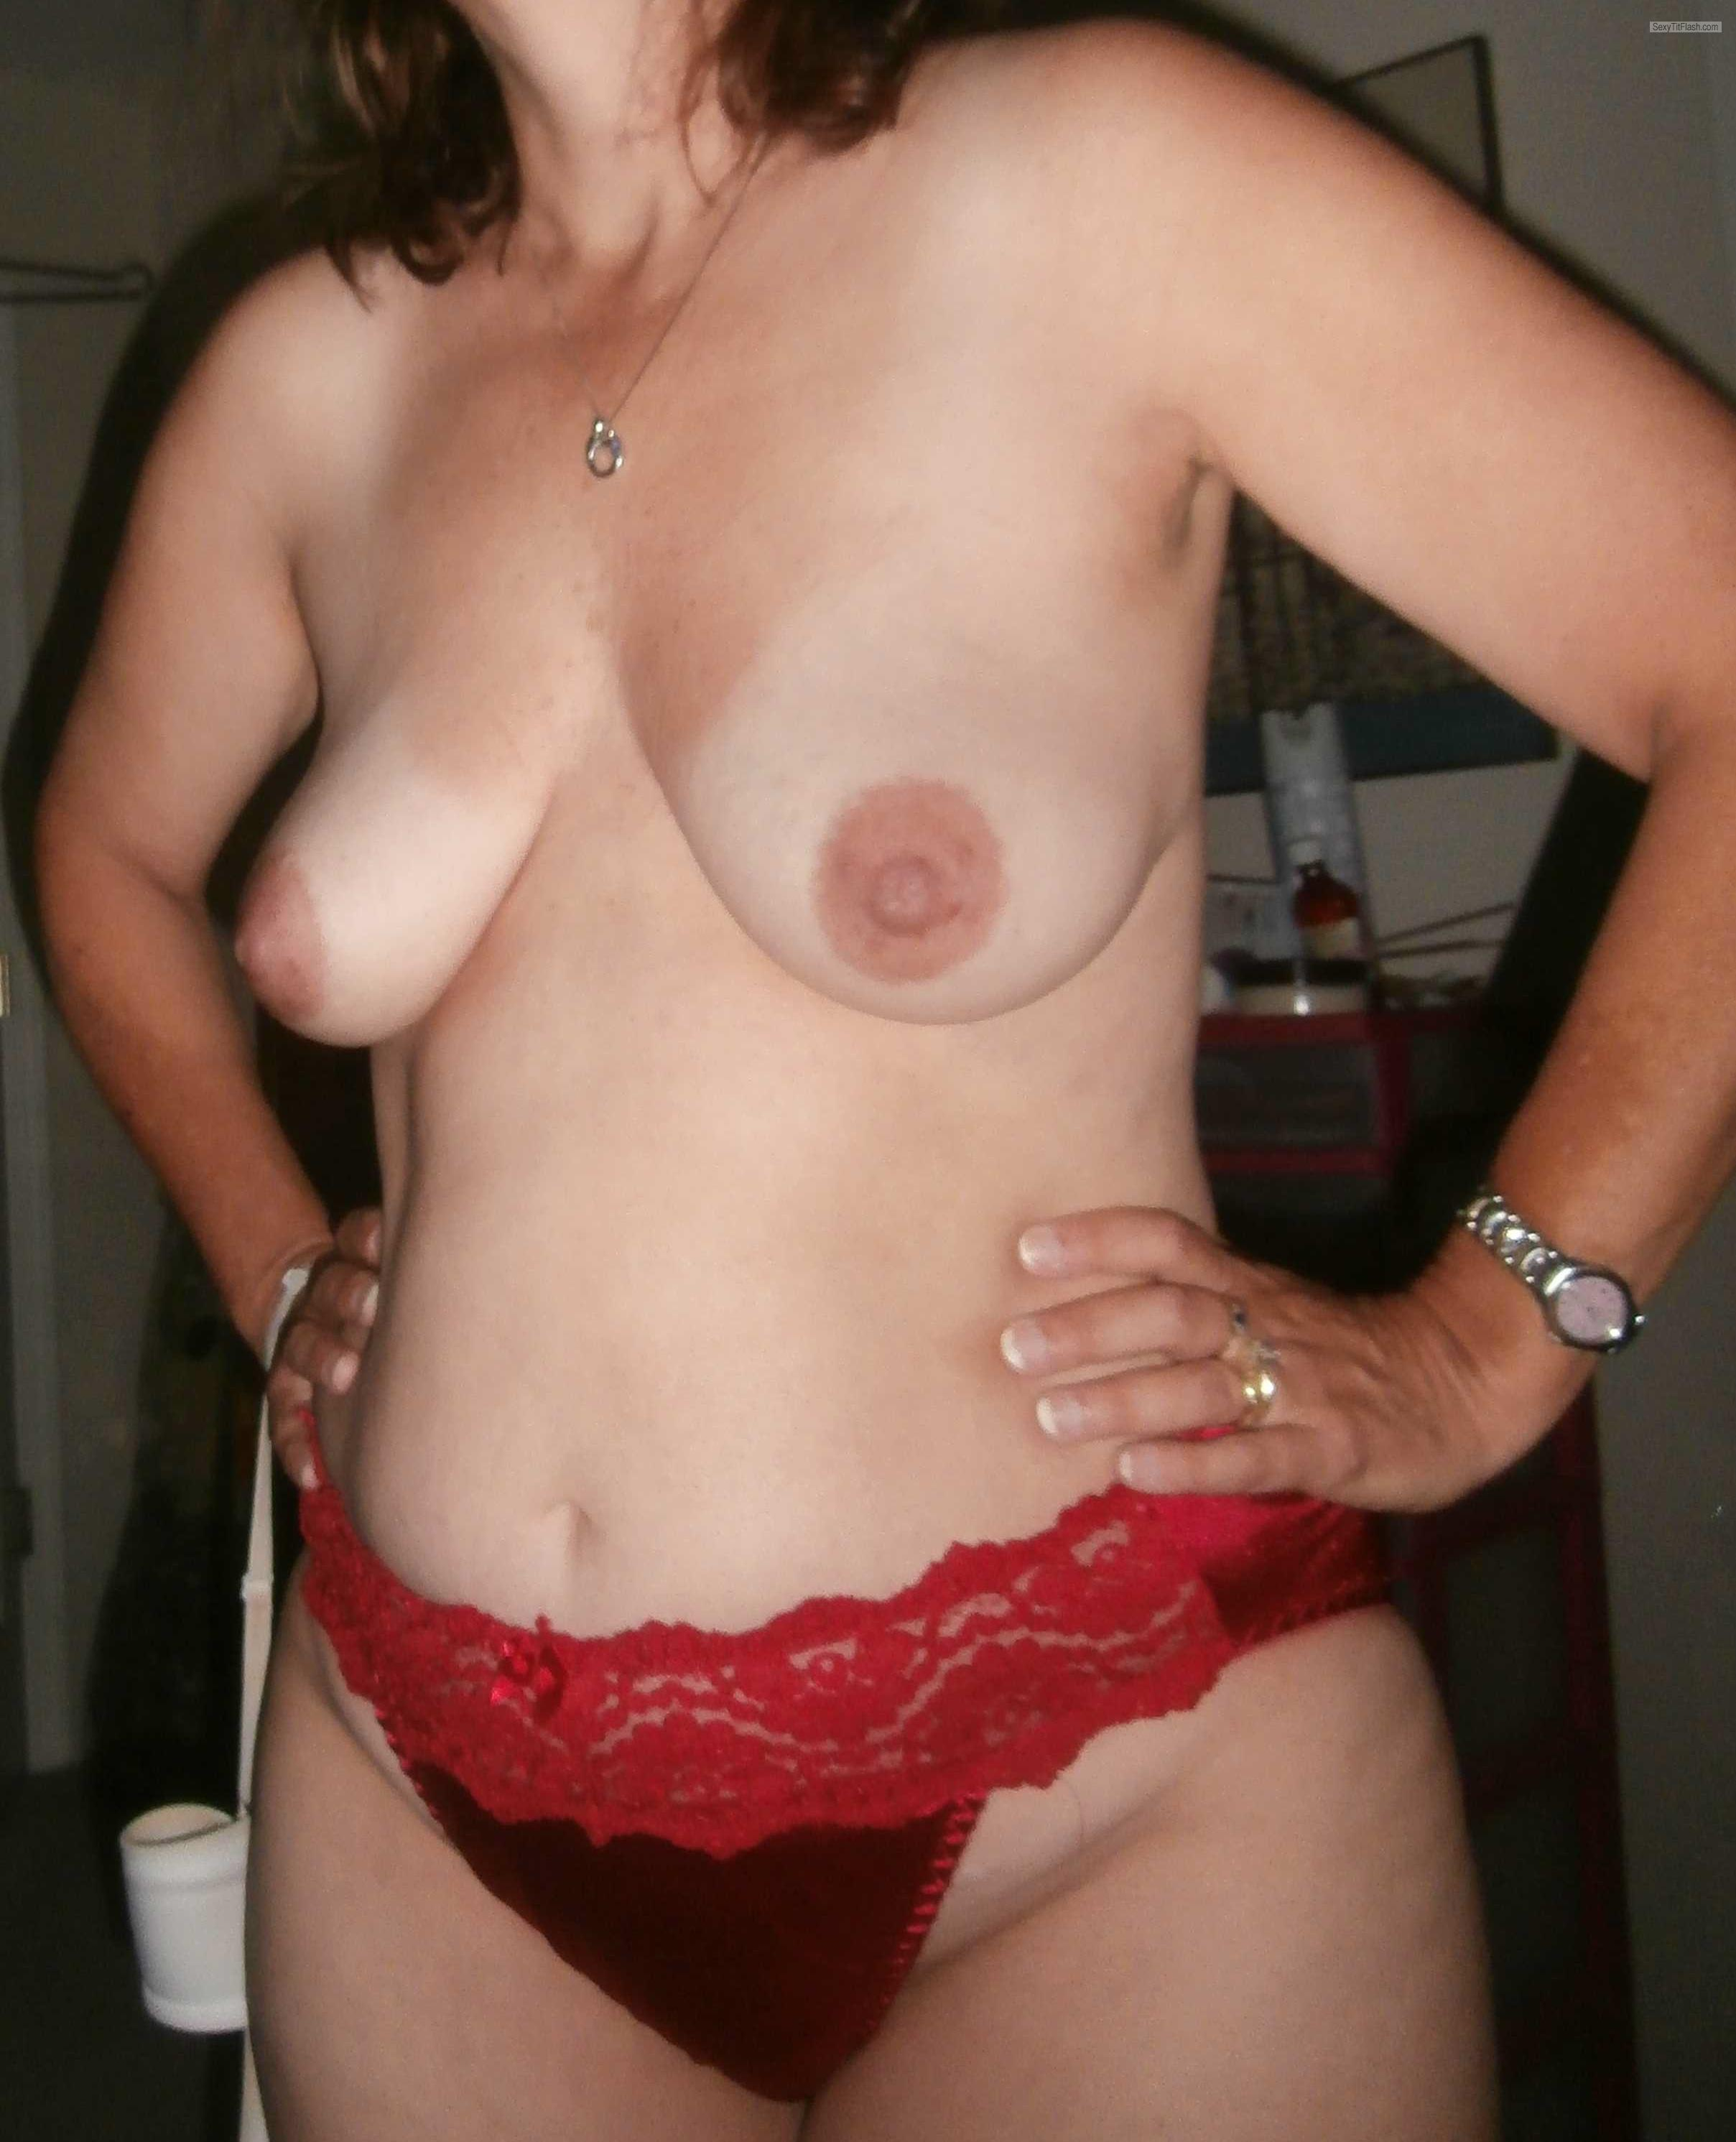 Tit Flash: Wife's Small Tits - FYI from United States